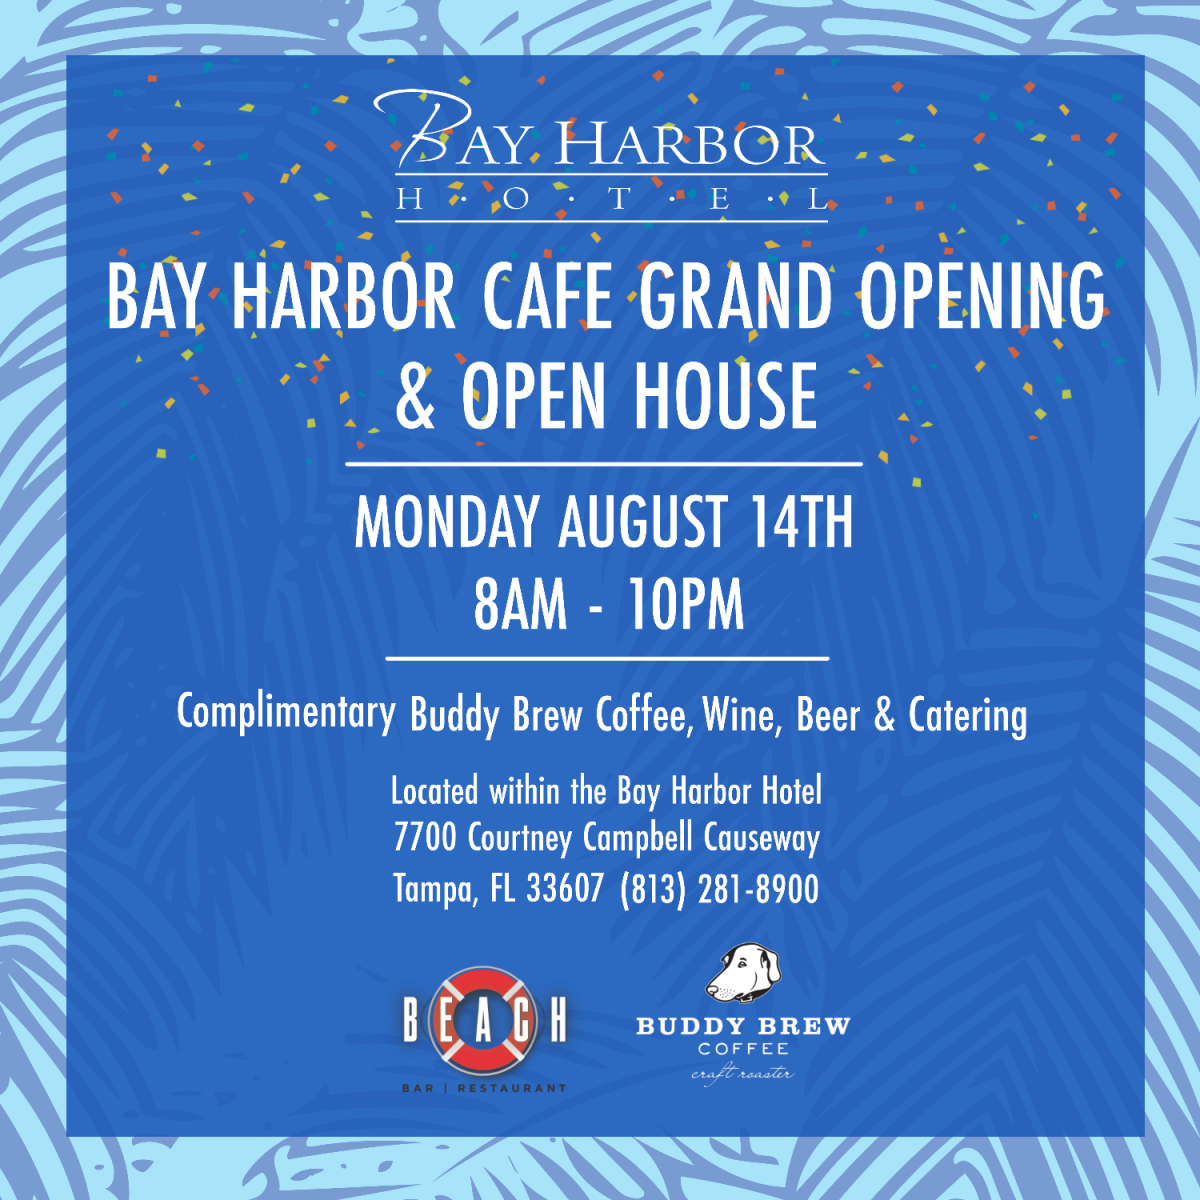 Bay Harbor Cafe Grand Opening & Ribbon Cutting